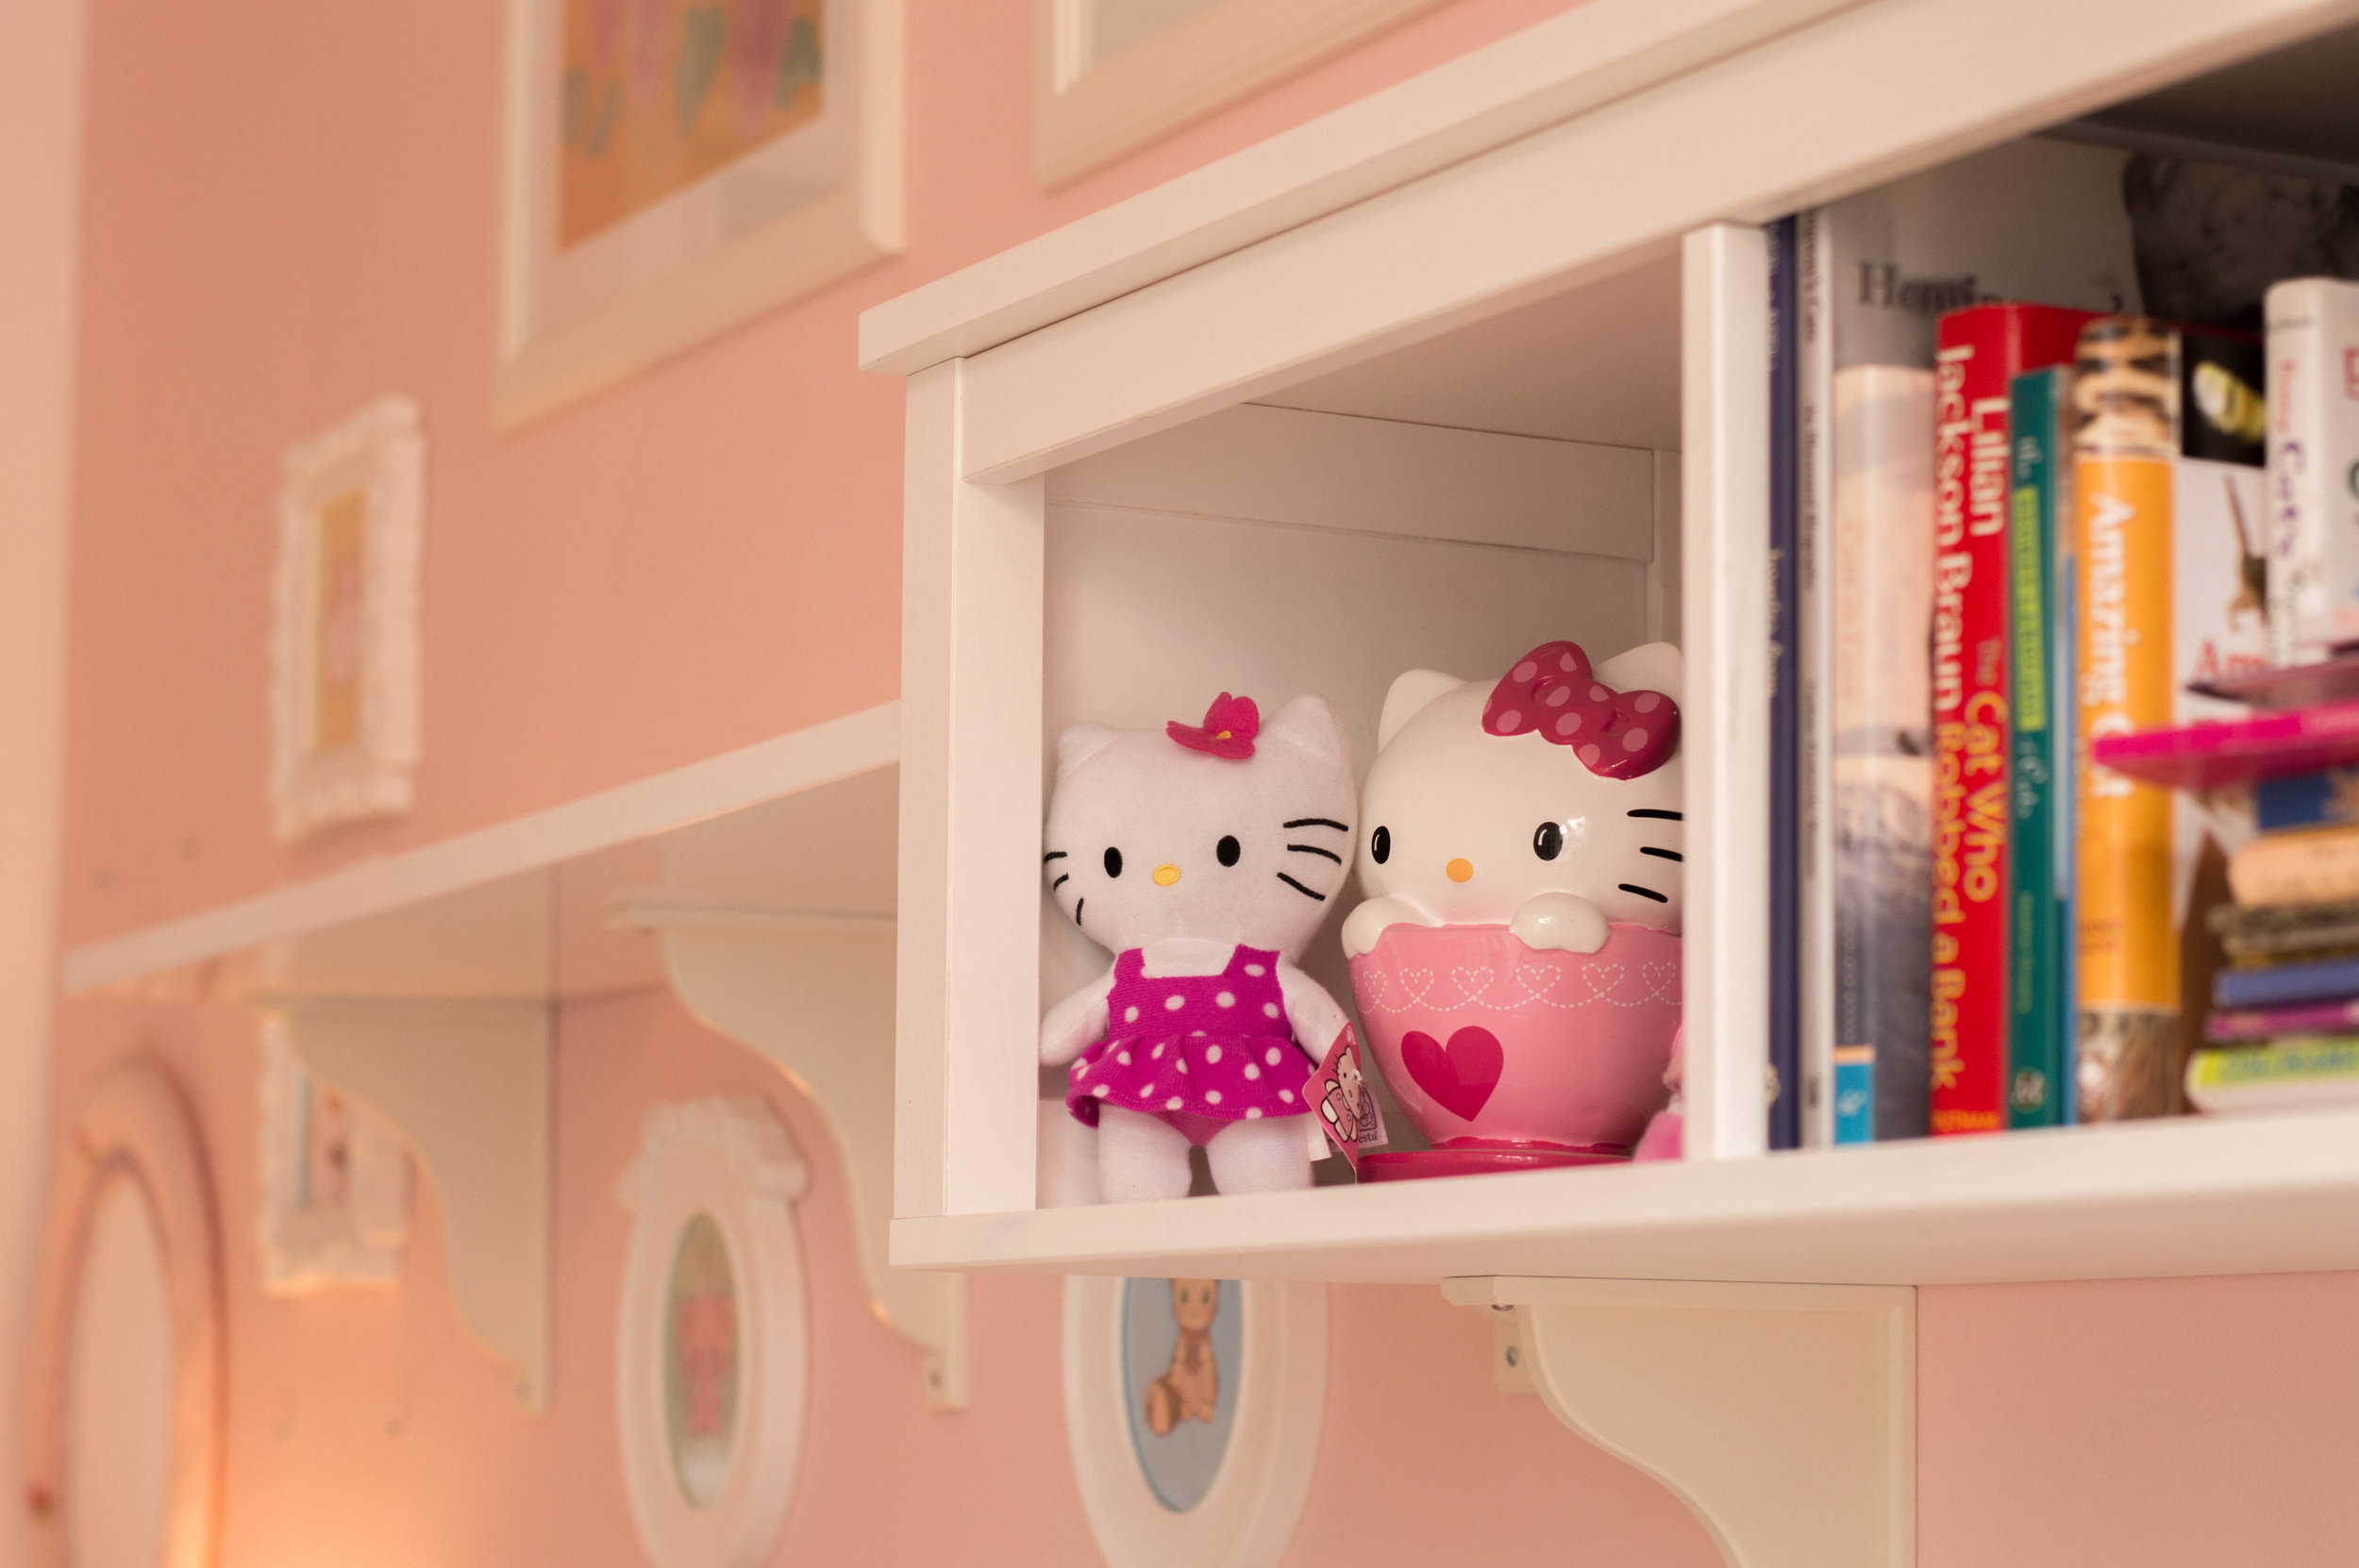 OH YES! I'm also a die-hard Hello Kitty fan hehe